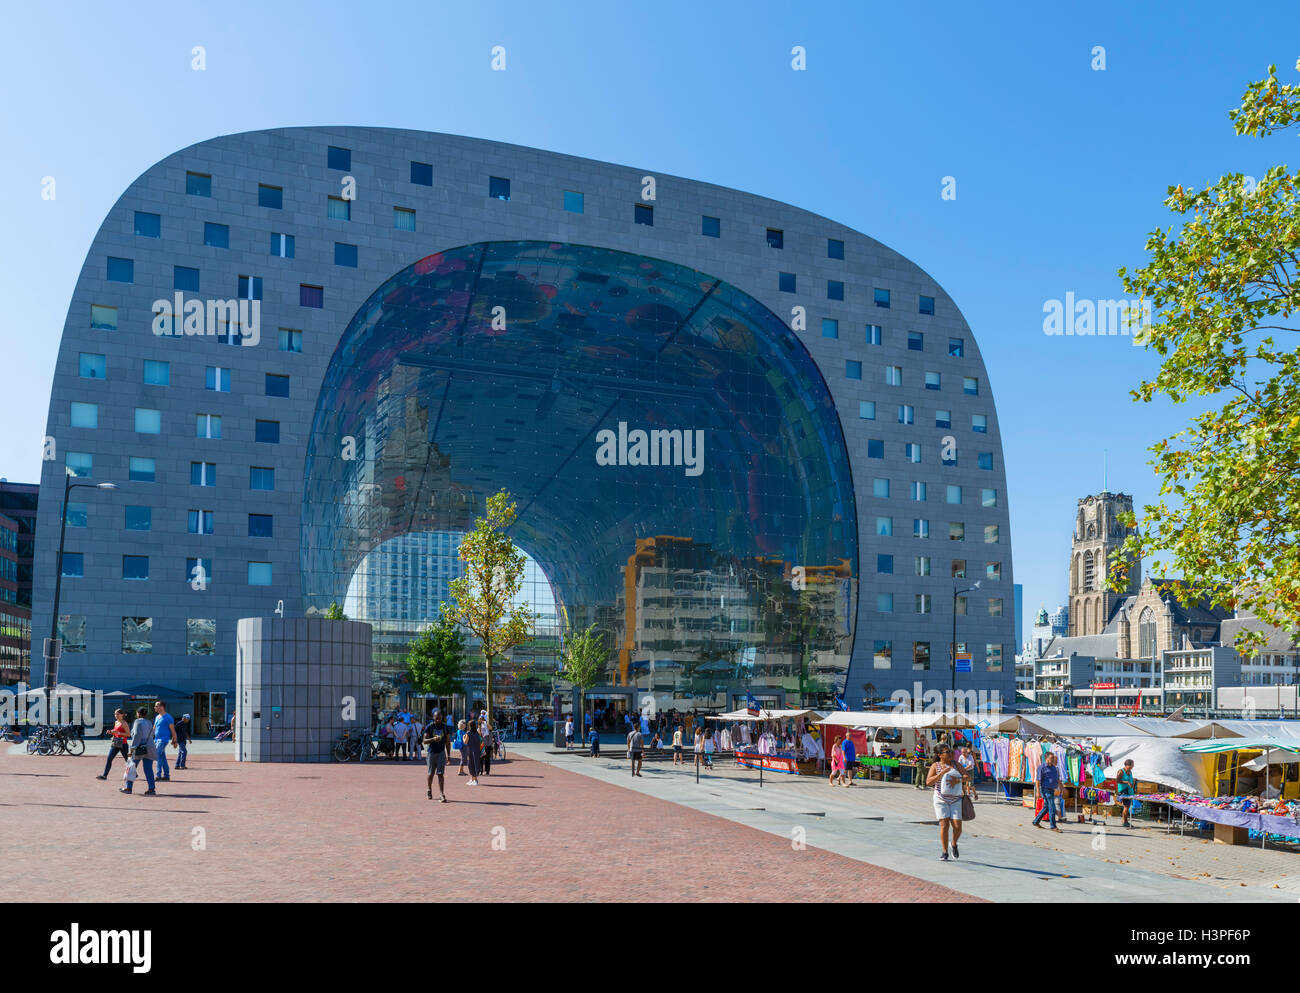 The Markthal (Market Hall), Rotterdam, Netherlands - Stock Image